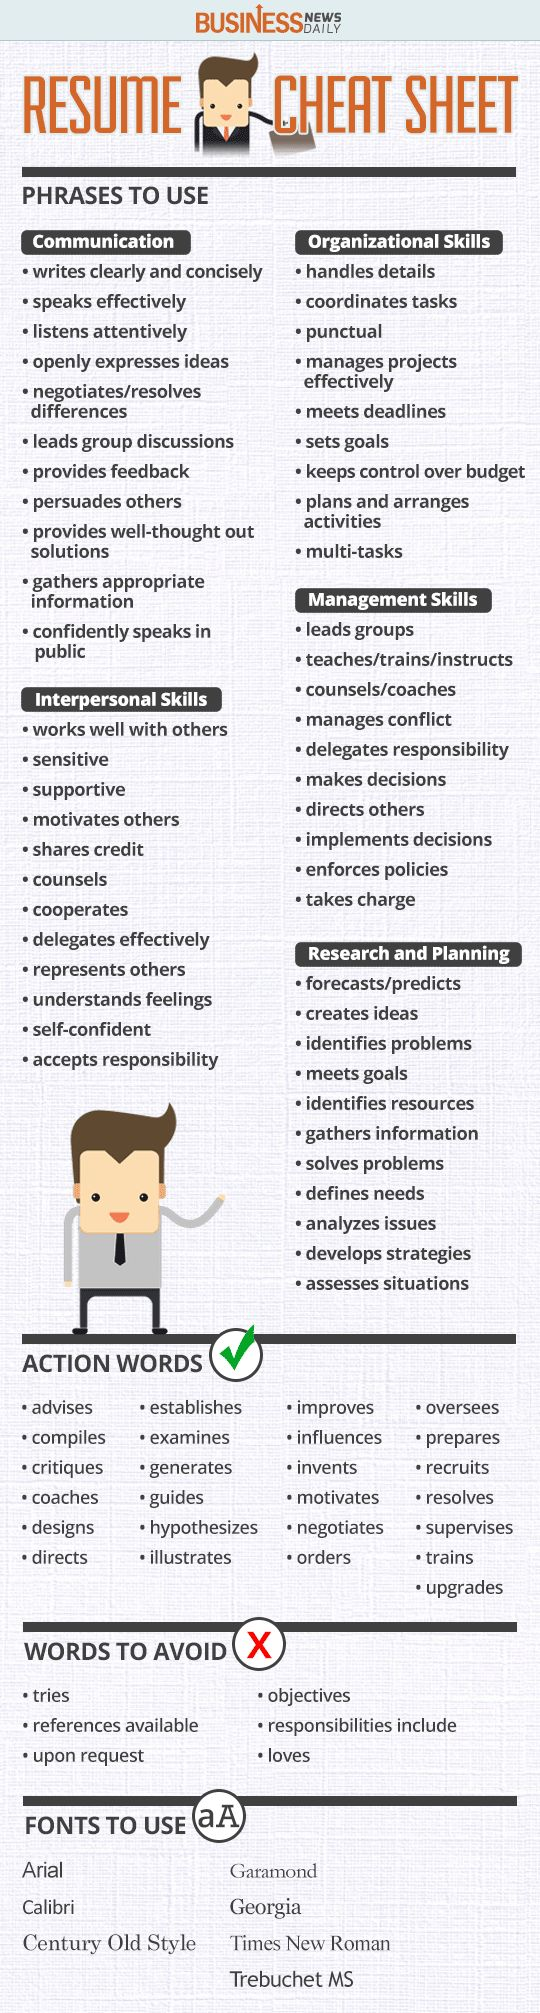 Opposenewapstandardsus  Winsome  Ideas About Resume On Pinterest  Cv Format Resume  With Marvelous Resume Cheat Sheet Infographic Andrews Almost Done With A Complete Unit On Employment Which With Amazing Litigation Paralegal Resume Also Professional Summary For A Resume In Addition Executive Summary For Resume And Student Athlete Resume As Well As Sample Resume Customer Service Additionally Truck Driving Resume From Pinterestcom With Opposenewapstandardsus  Marvelous  Ideas About Resume On Pinterest  Cv Format Resume  With Amazing Resume Cheat Sheet Infographic Andrews Almost Done With A Complete Unit On Employment Which And Winsome Litigation Paralegal Resume Also Professional Summary For A Resume In Addition Executive Summary For Resume From Pinterestcom